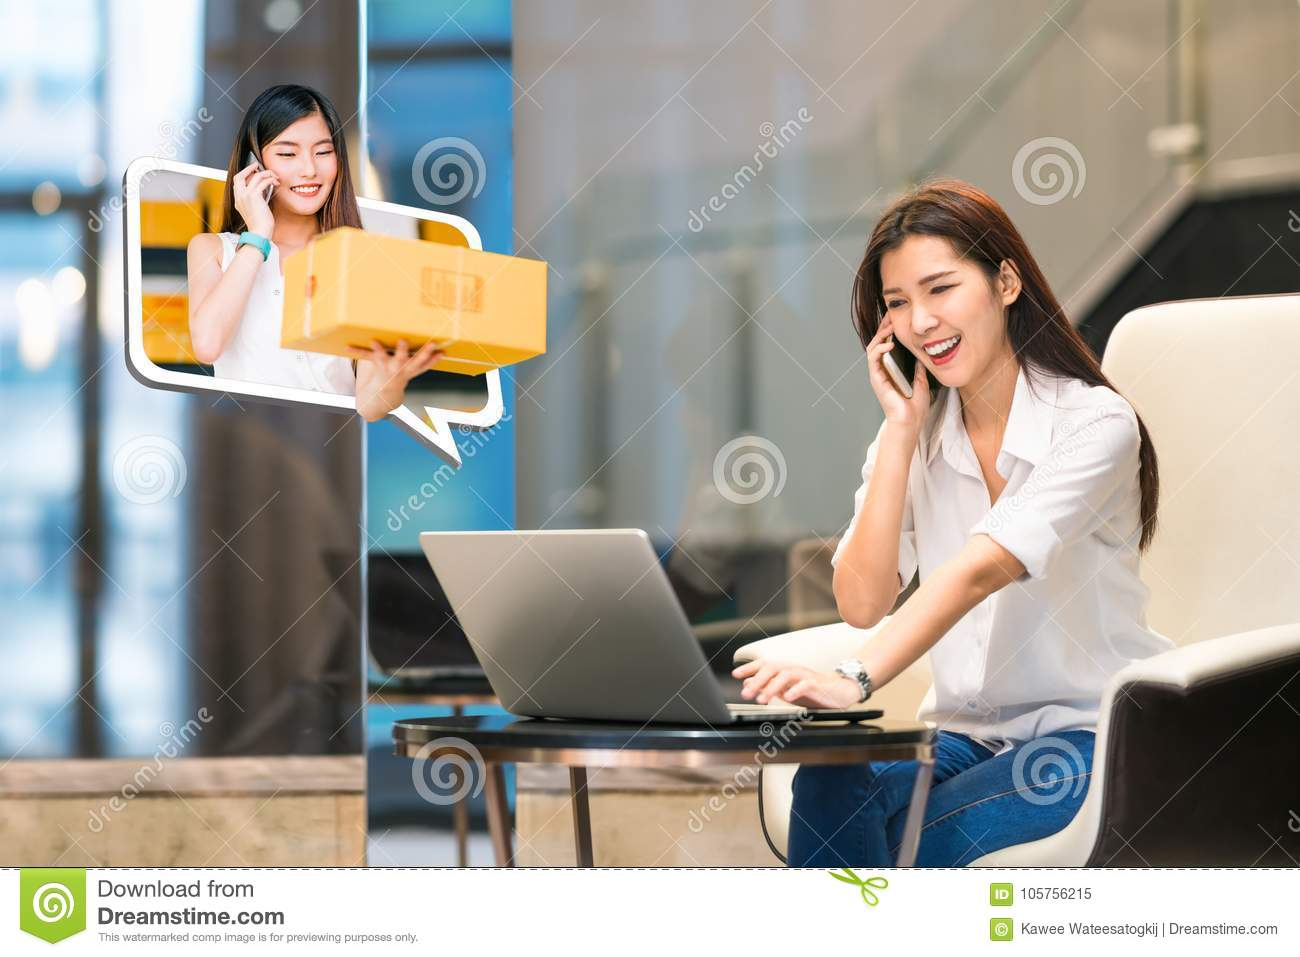 Asian girl shop online using phone call with female small business owner delivering parcel box. Internet shopping lifestyle